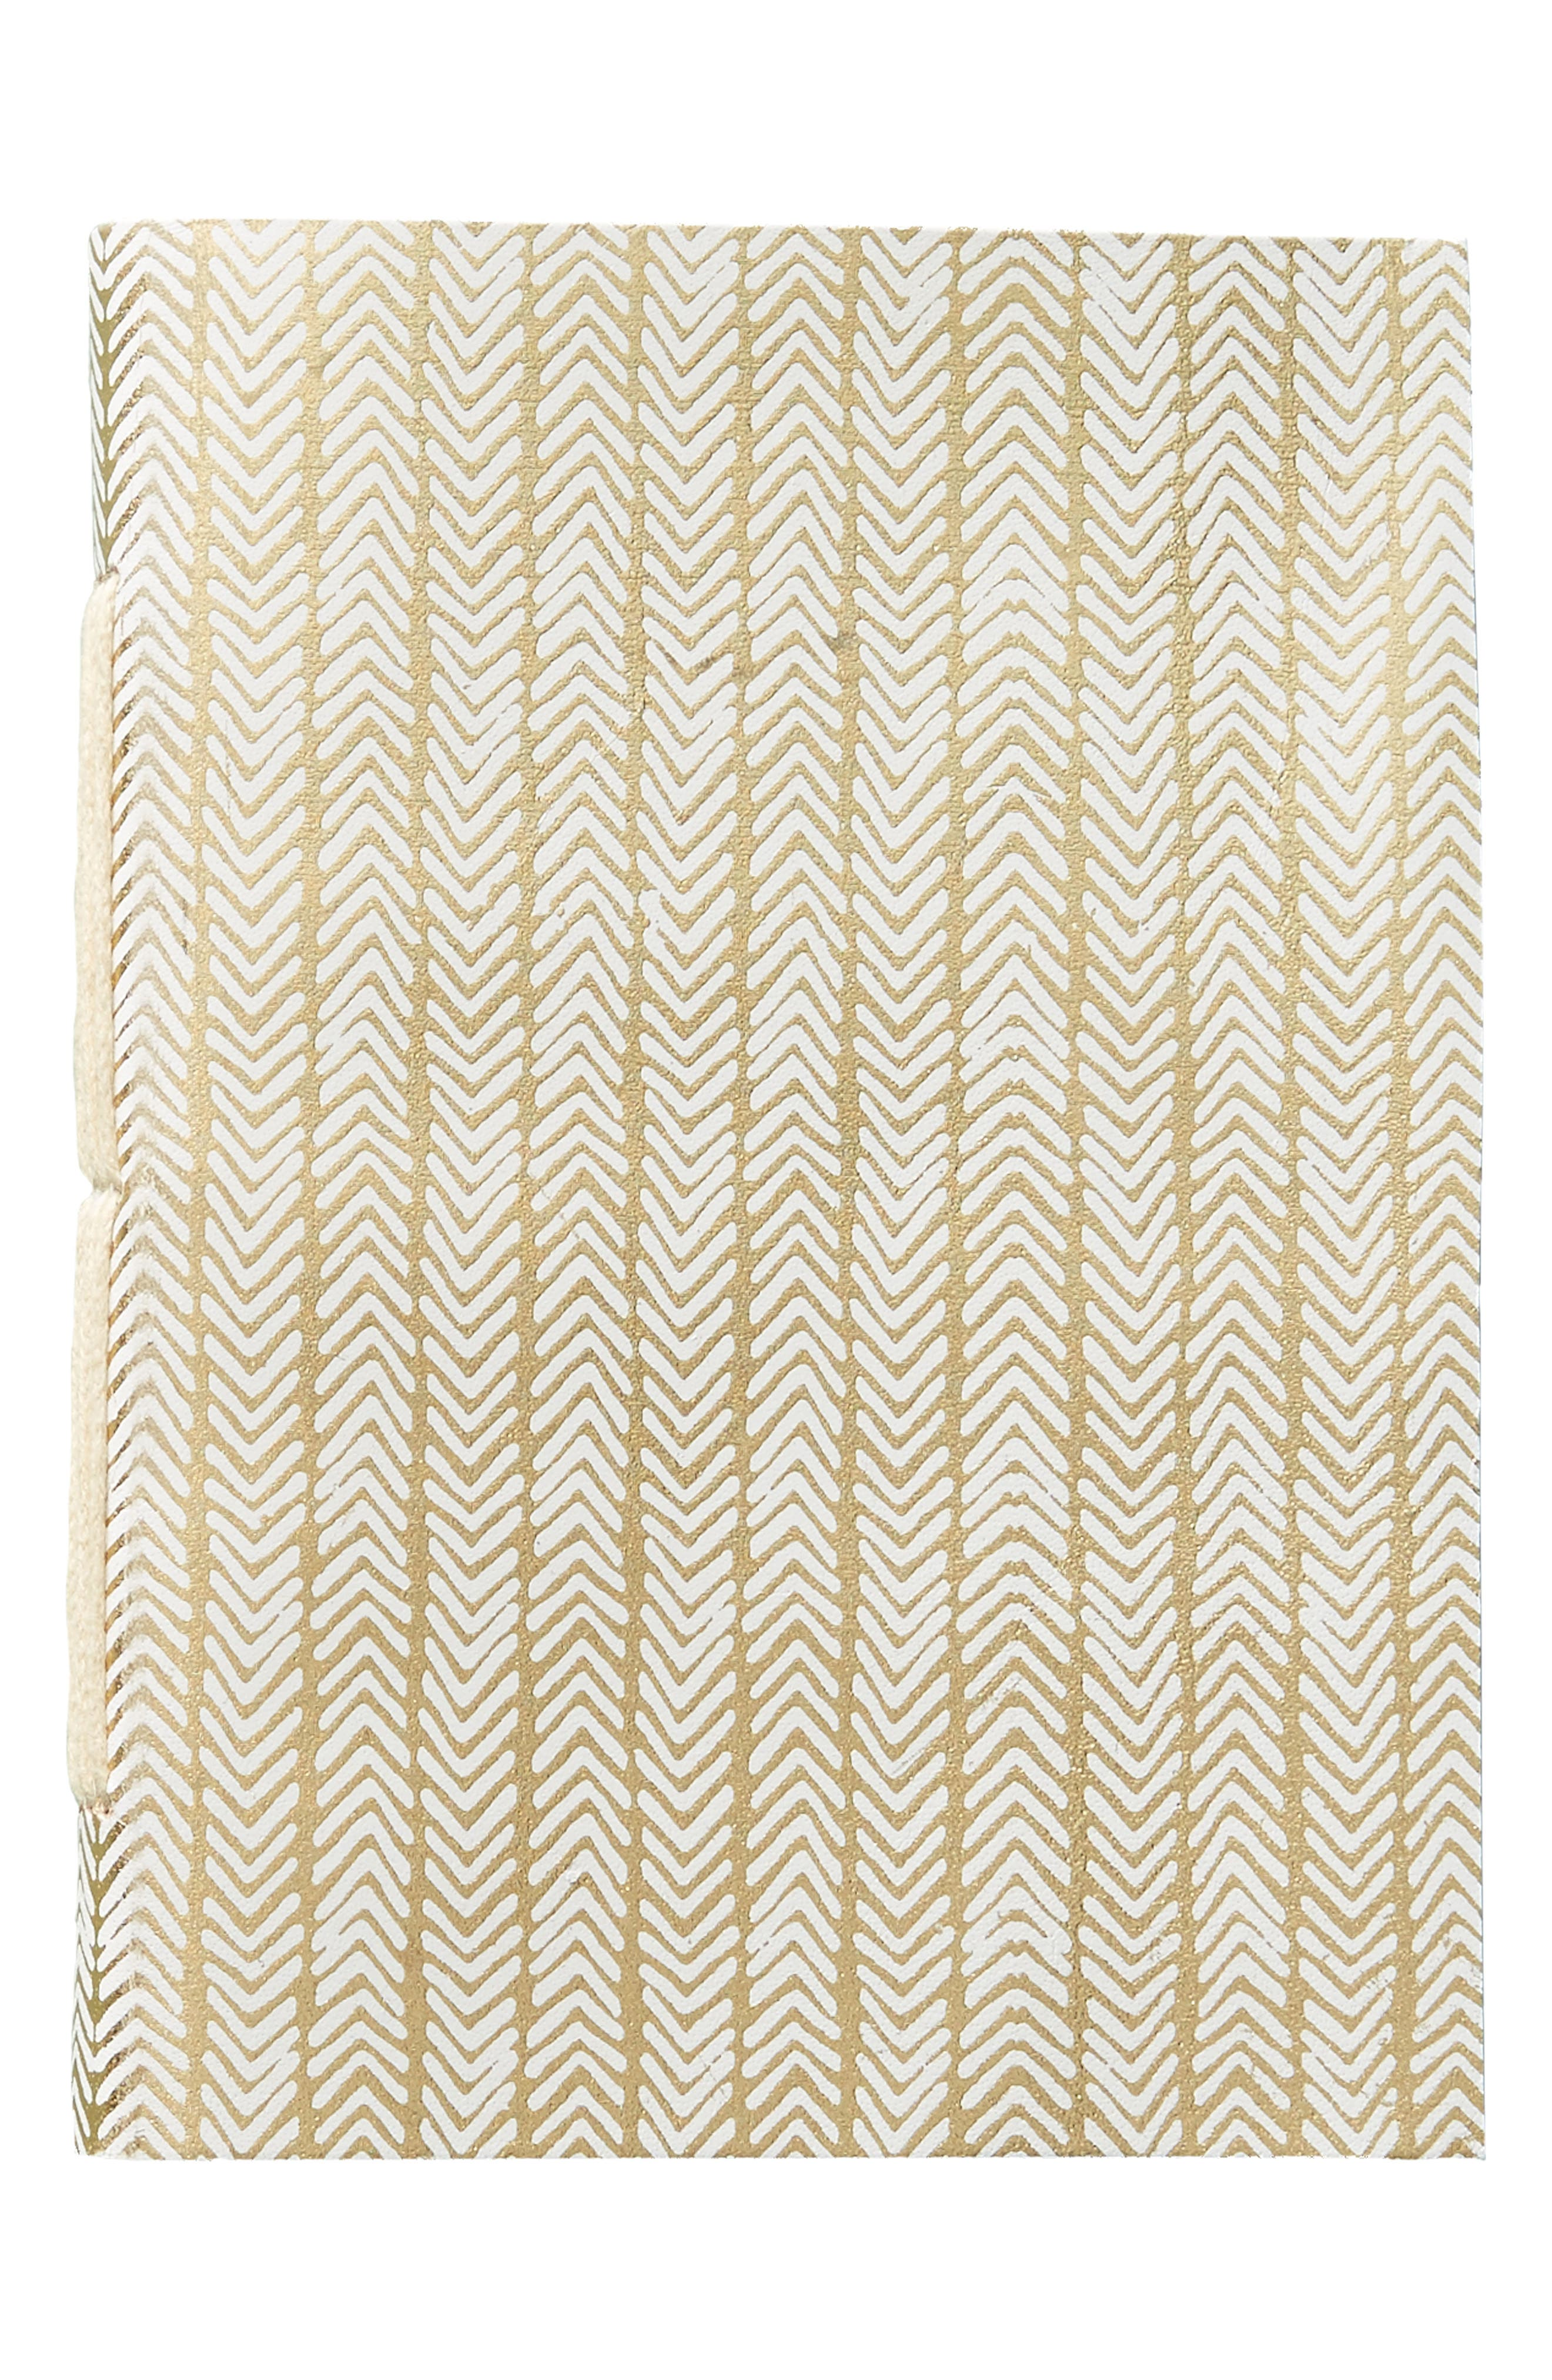 Gilded Leather Journal,                             Alternate thumbnail 5, color,                             White/ Gold - Small